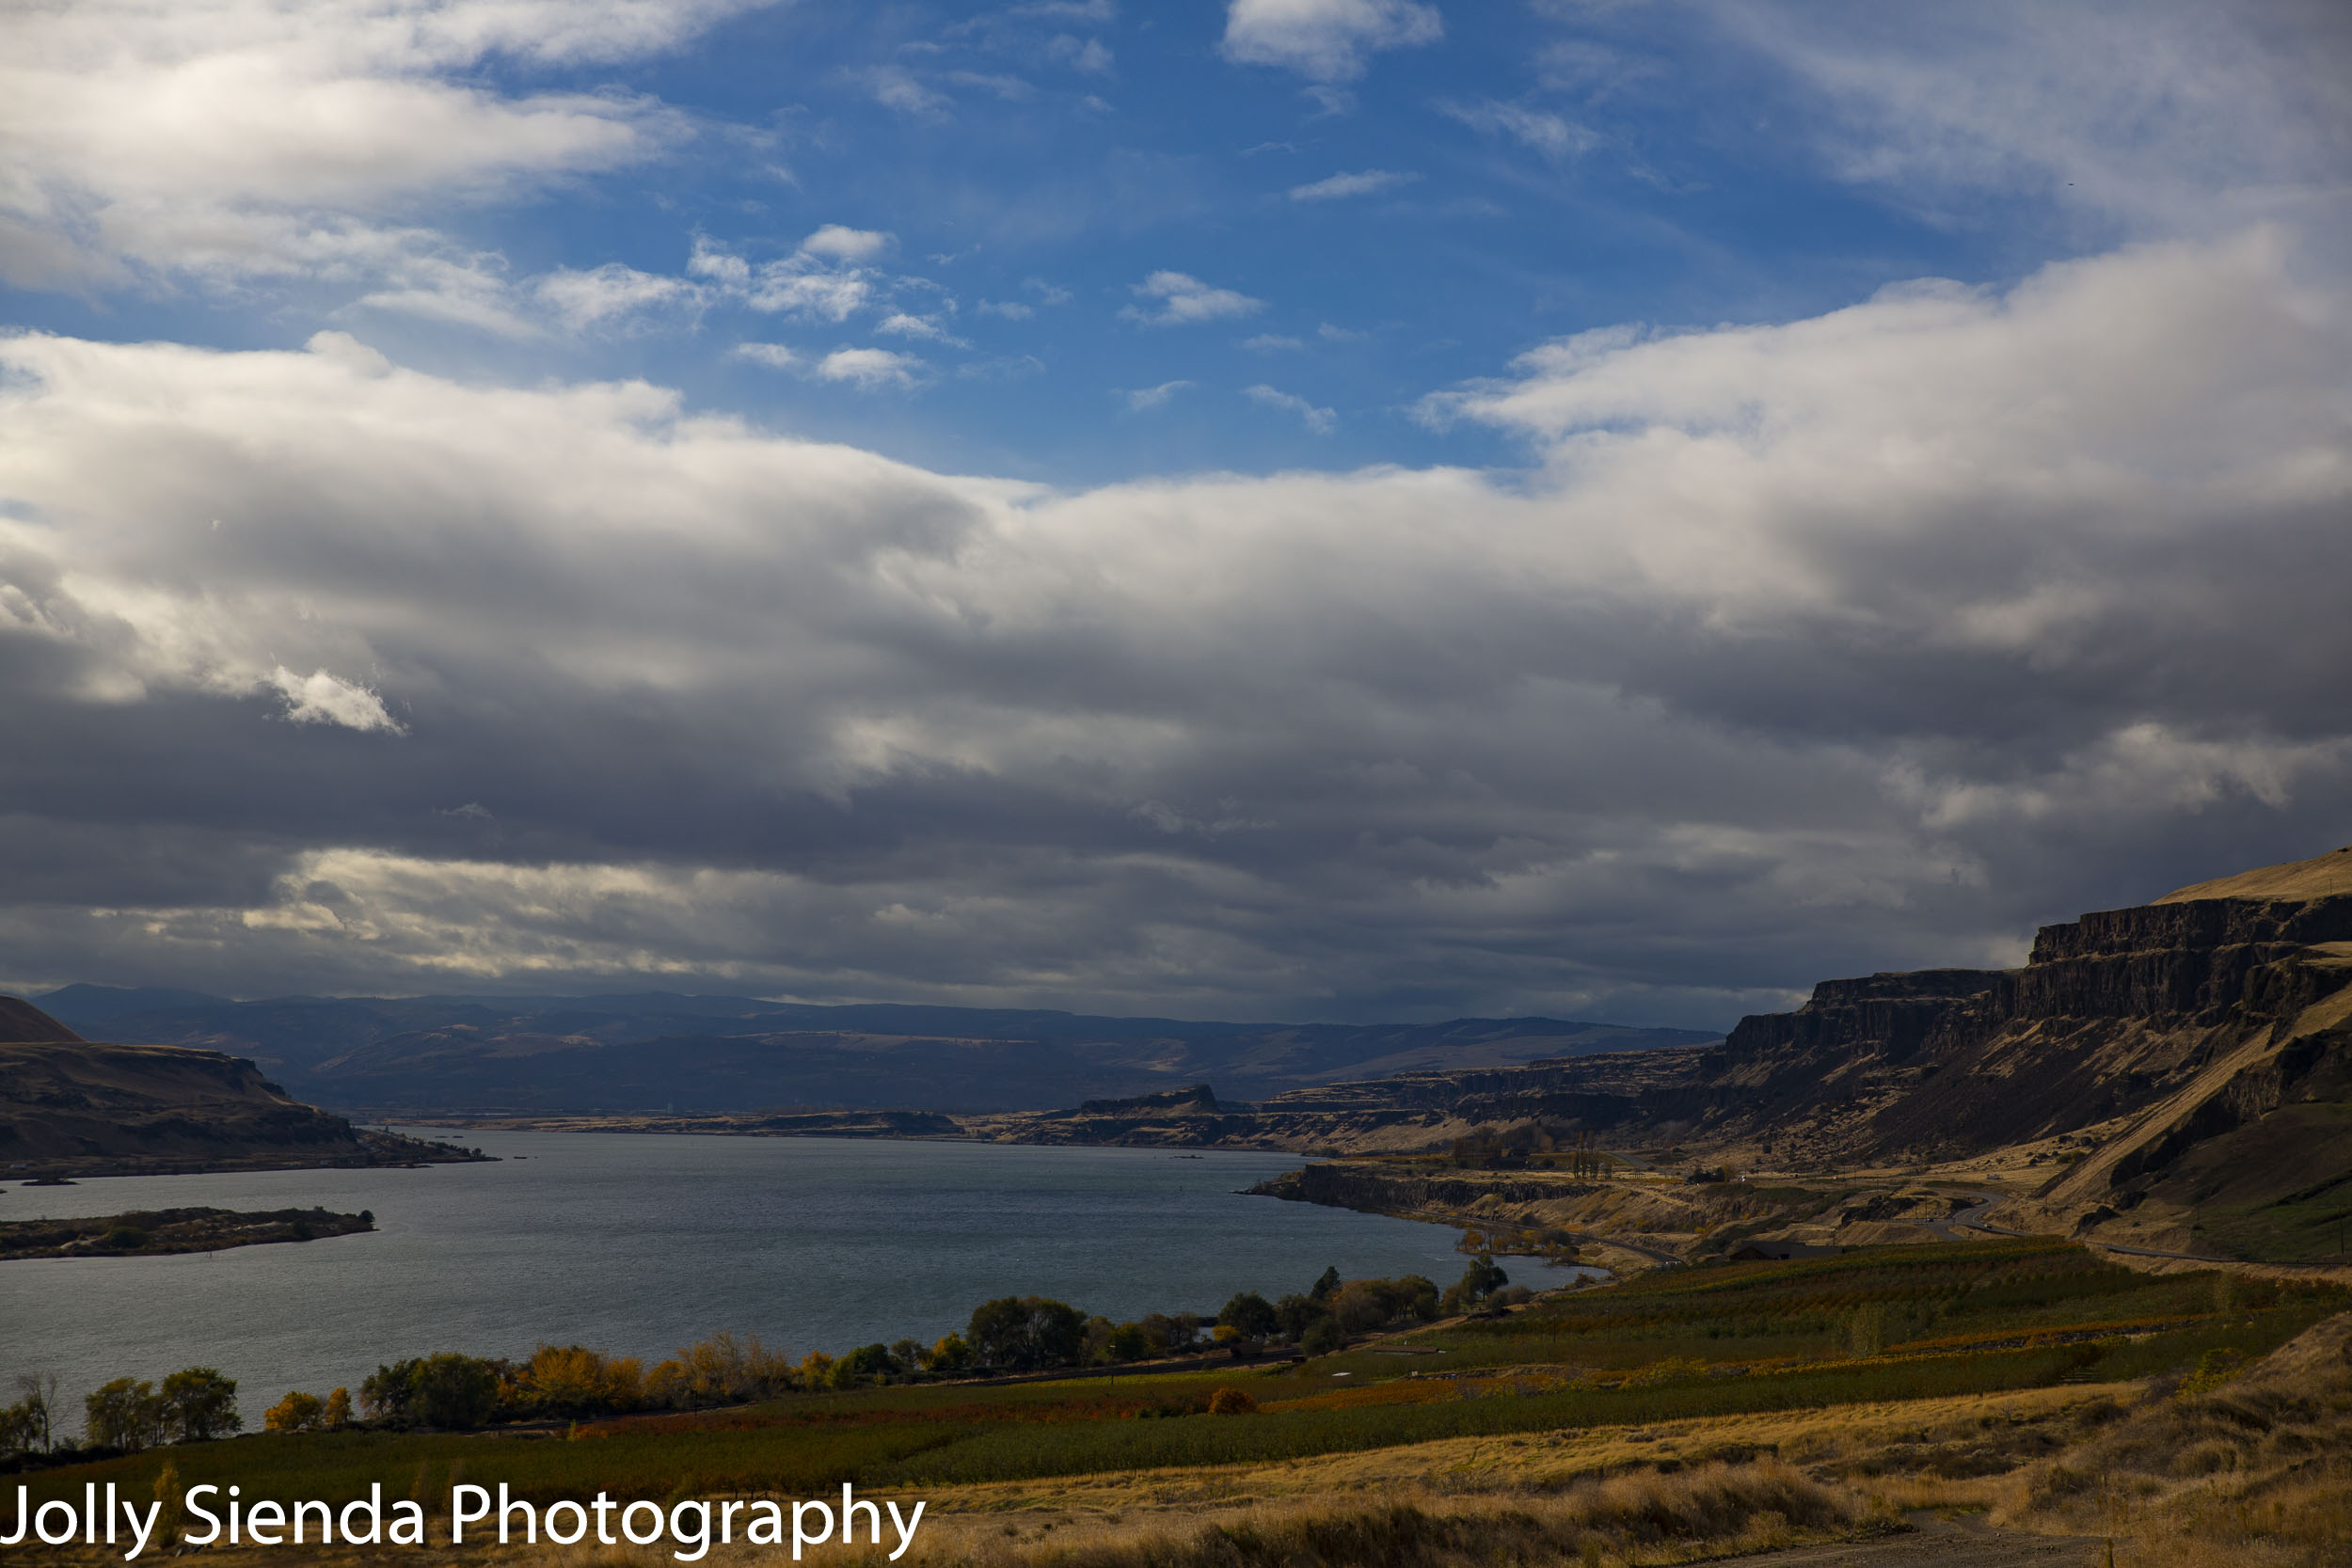 Columbia River Gorge near Maryhill, Washington